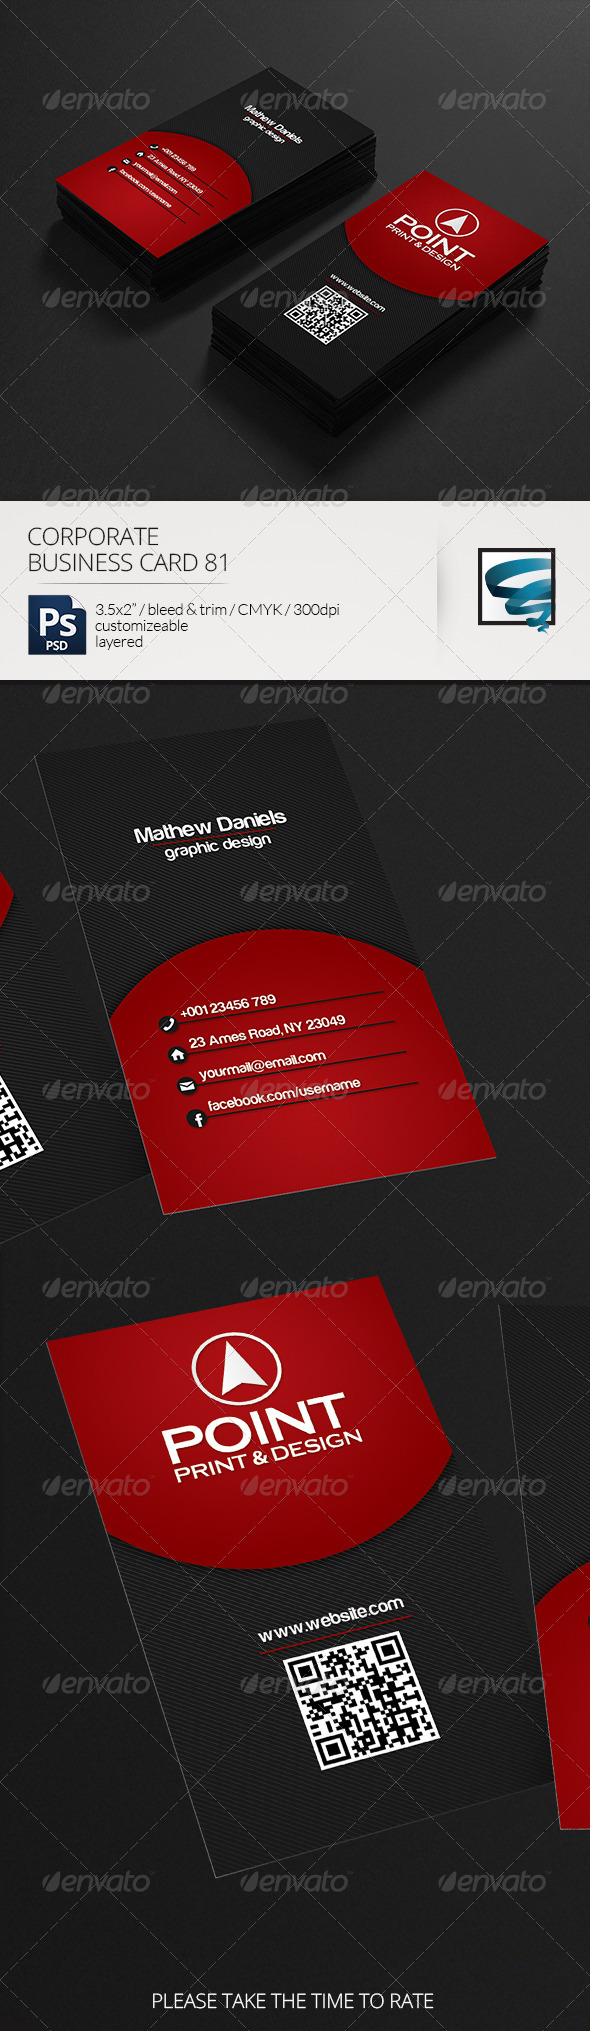 Corporate Business Card 81 - Business Cards Print Templates